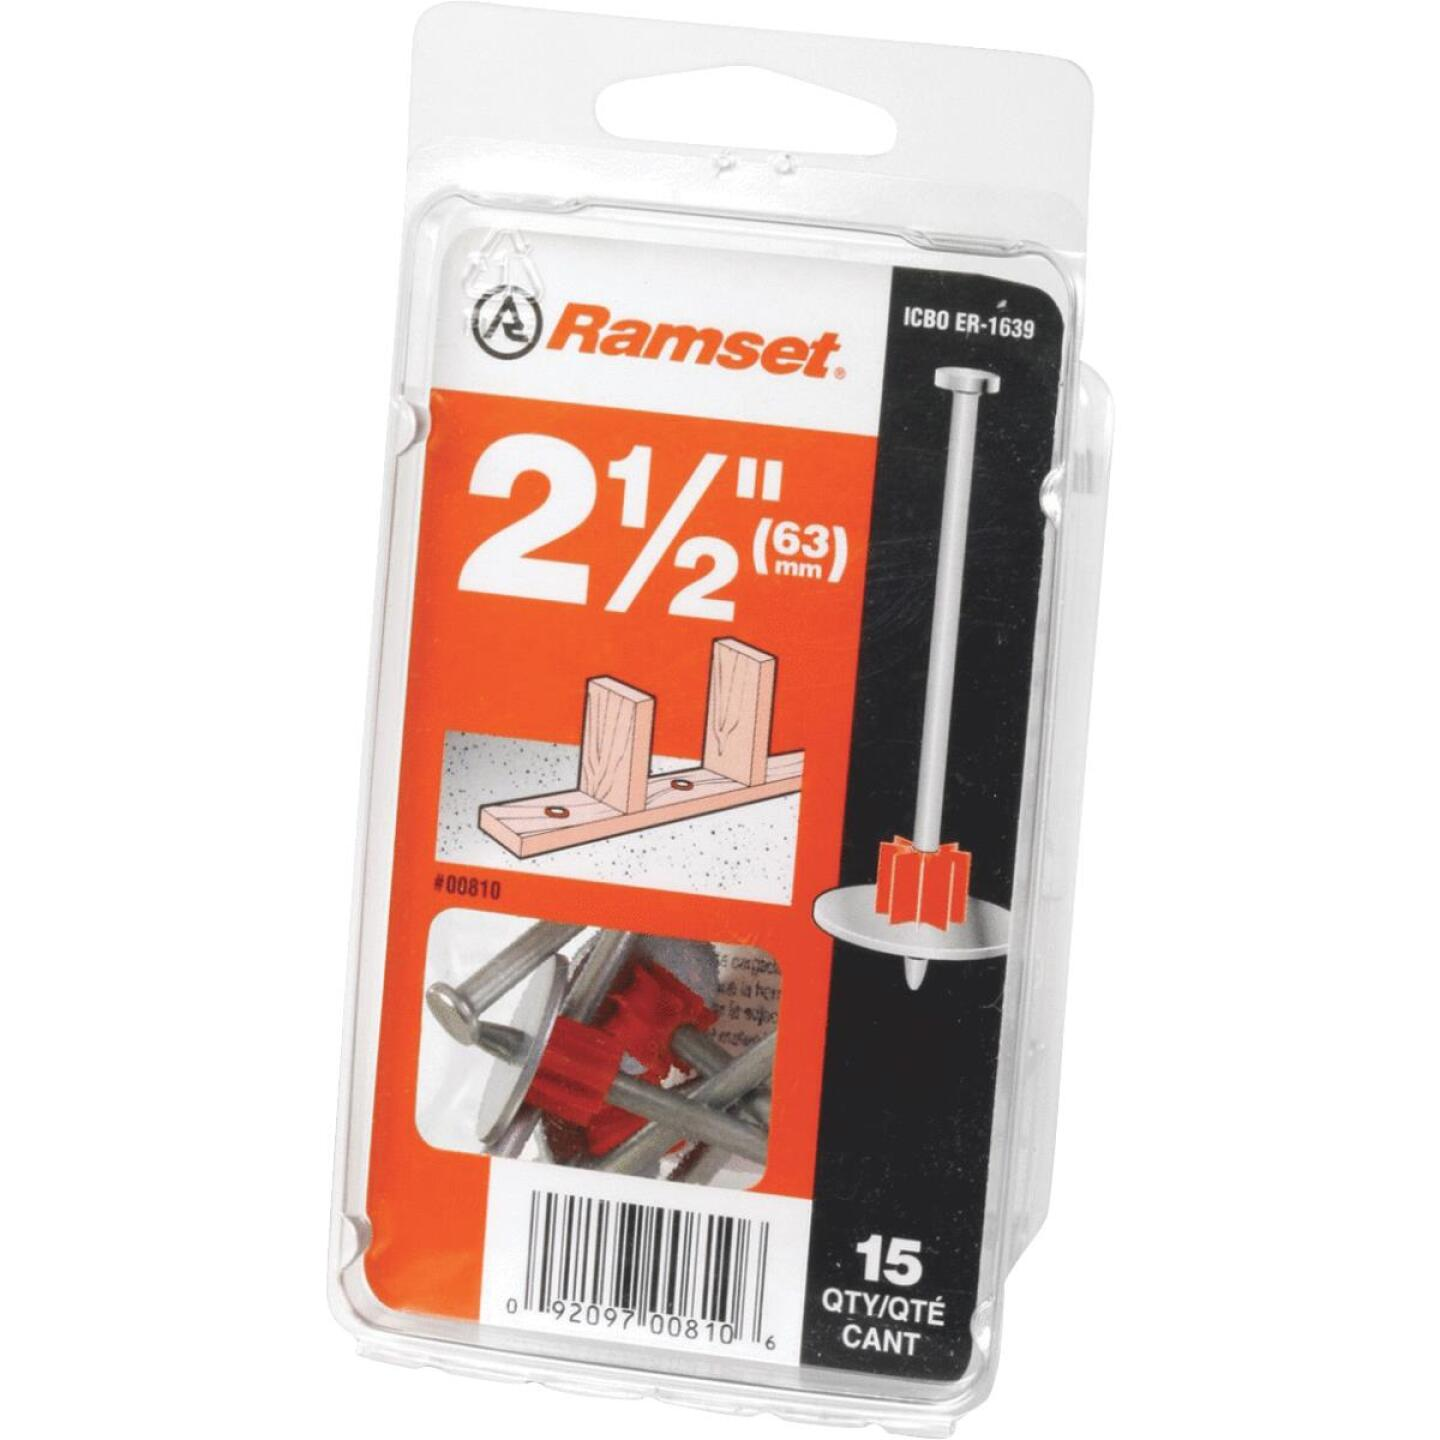 Ramset 1-1/2 In. Fastening Pin with Washer (15-Pack) Image 1